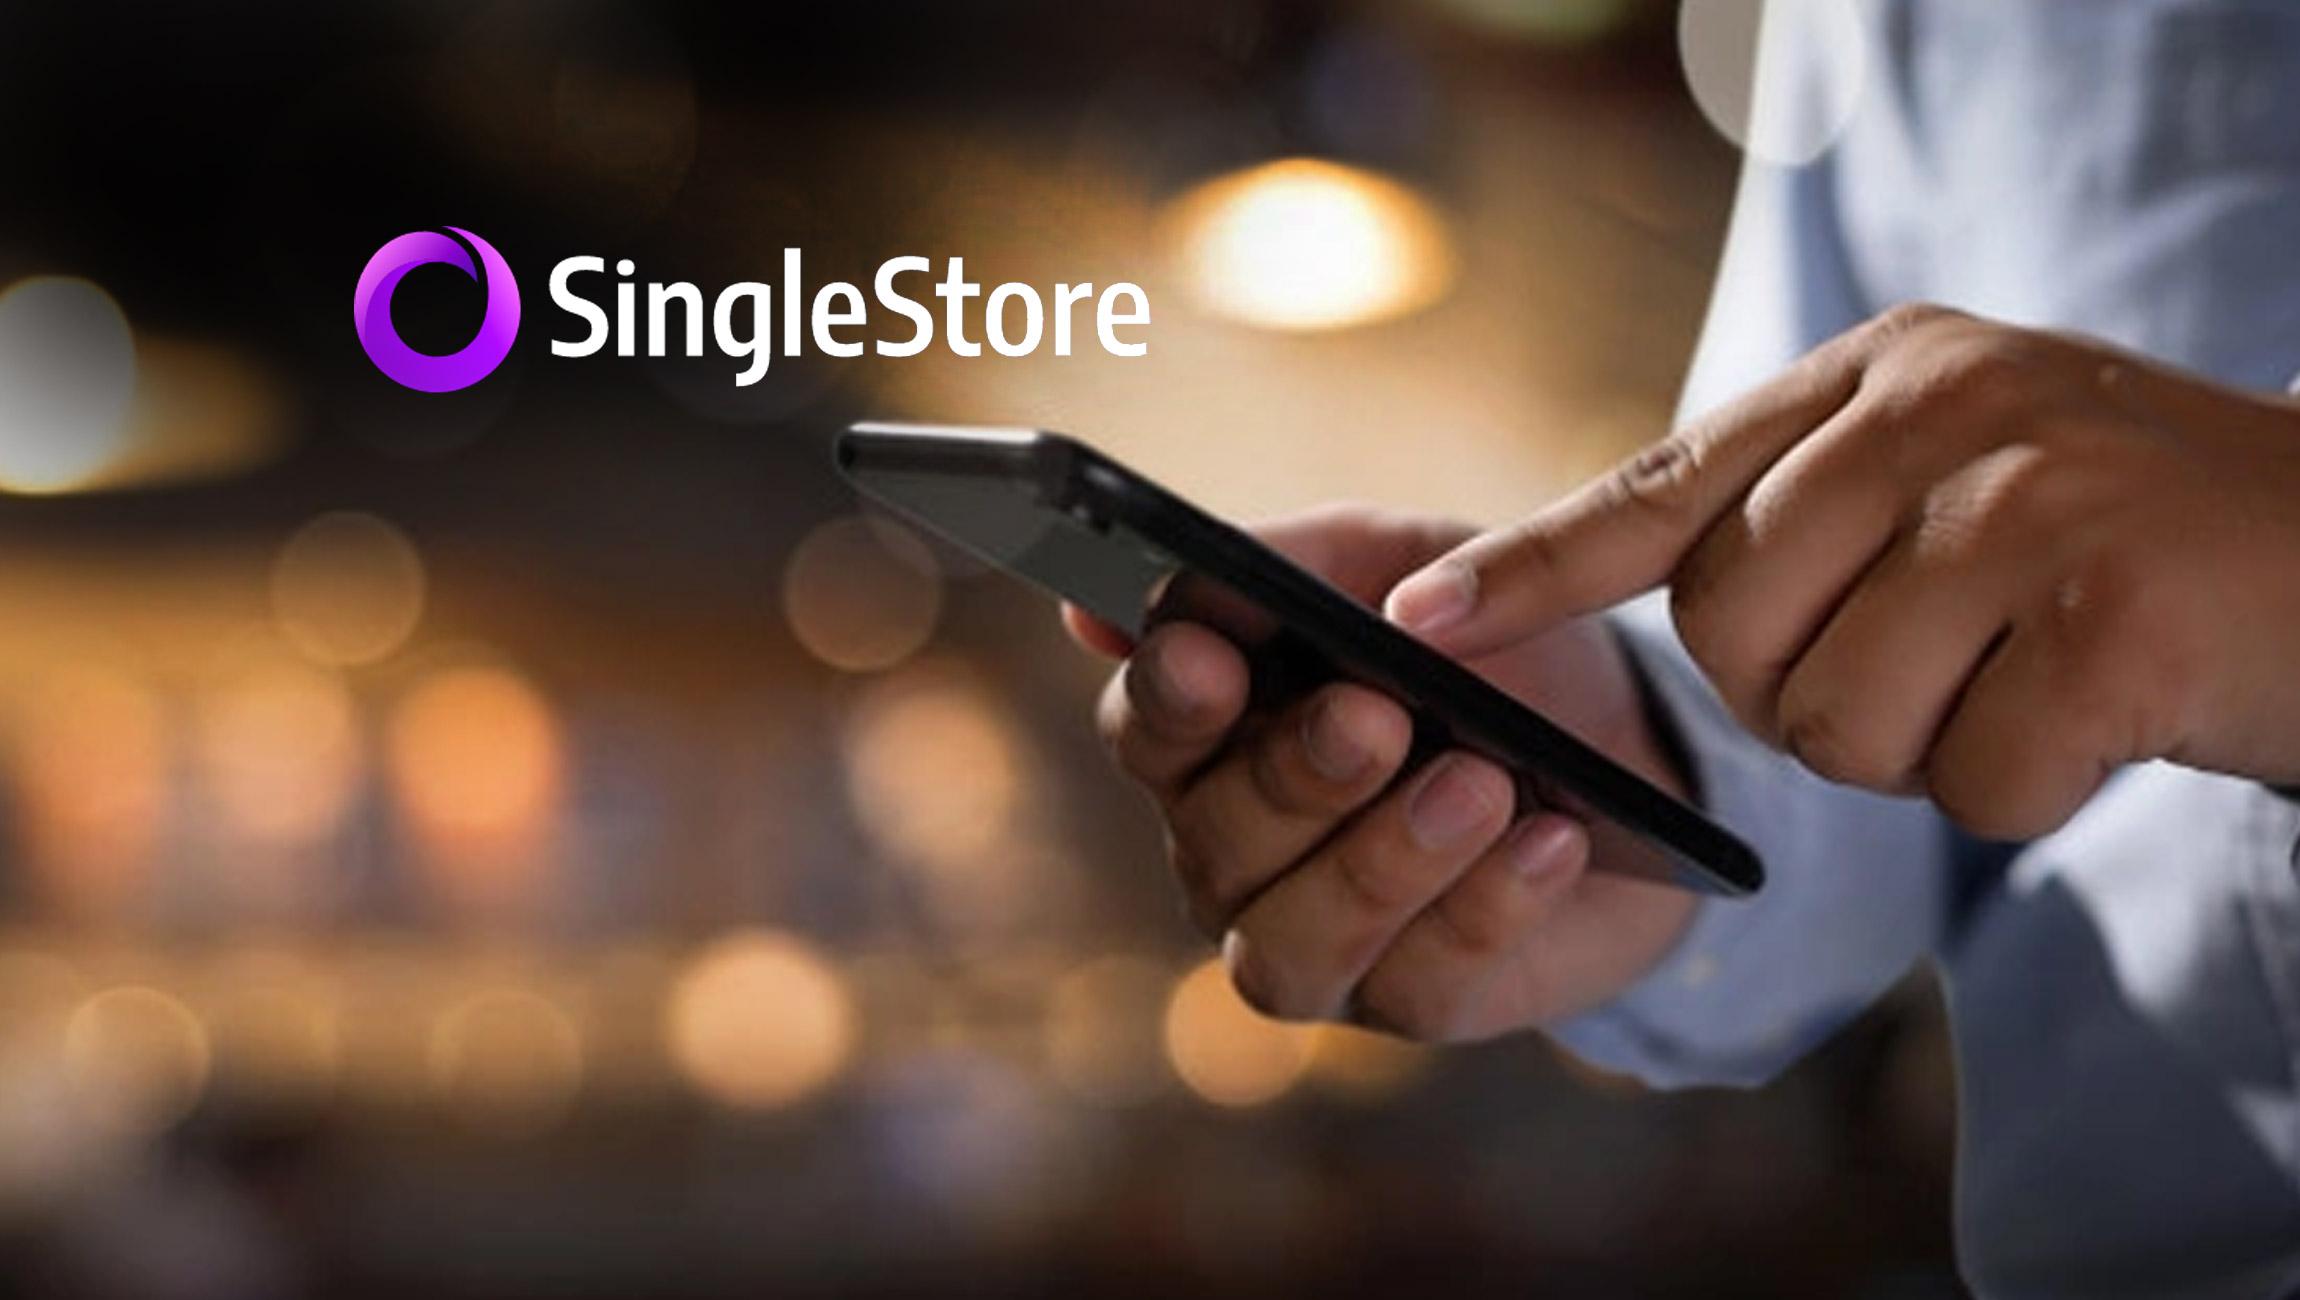 Fast Company Names SingleStore a 2021 World Changing Ideas Awards Honorable Mention Winner Among a Field of 4,000 Worldwide Applicants